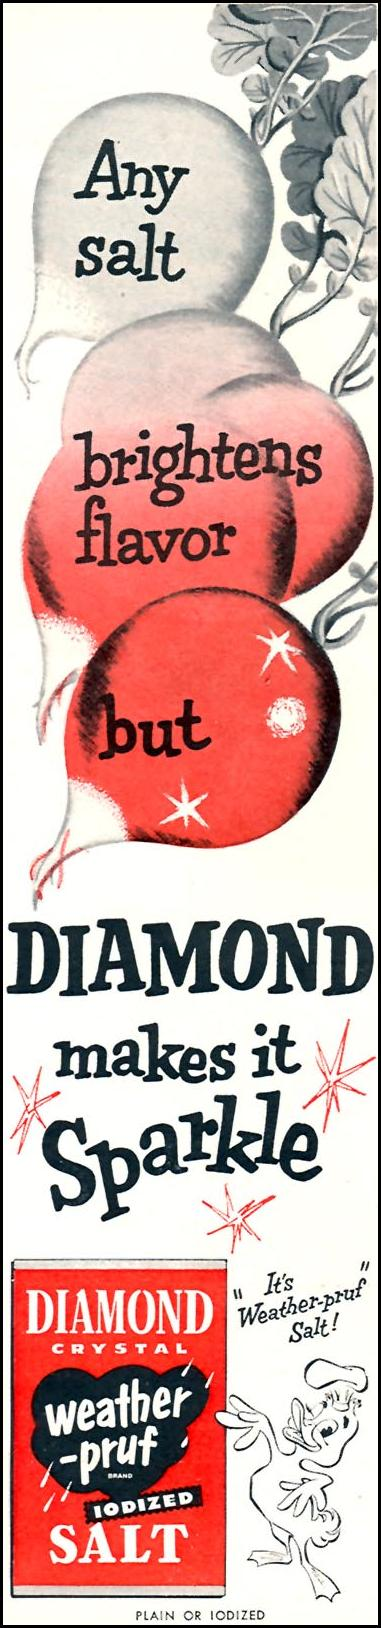 DIAMOND CRYSTAL IODIZED SHAKER SALT FAMILY CIRCLE 01/01/1956 p. 8